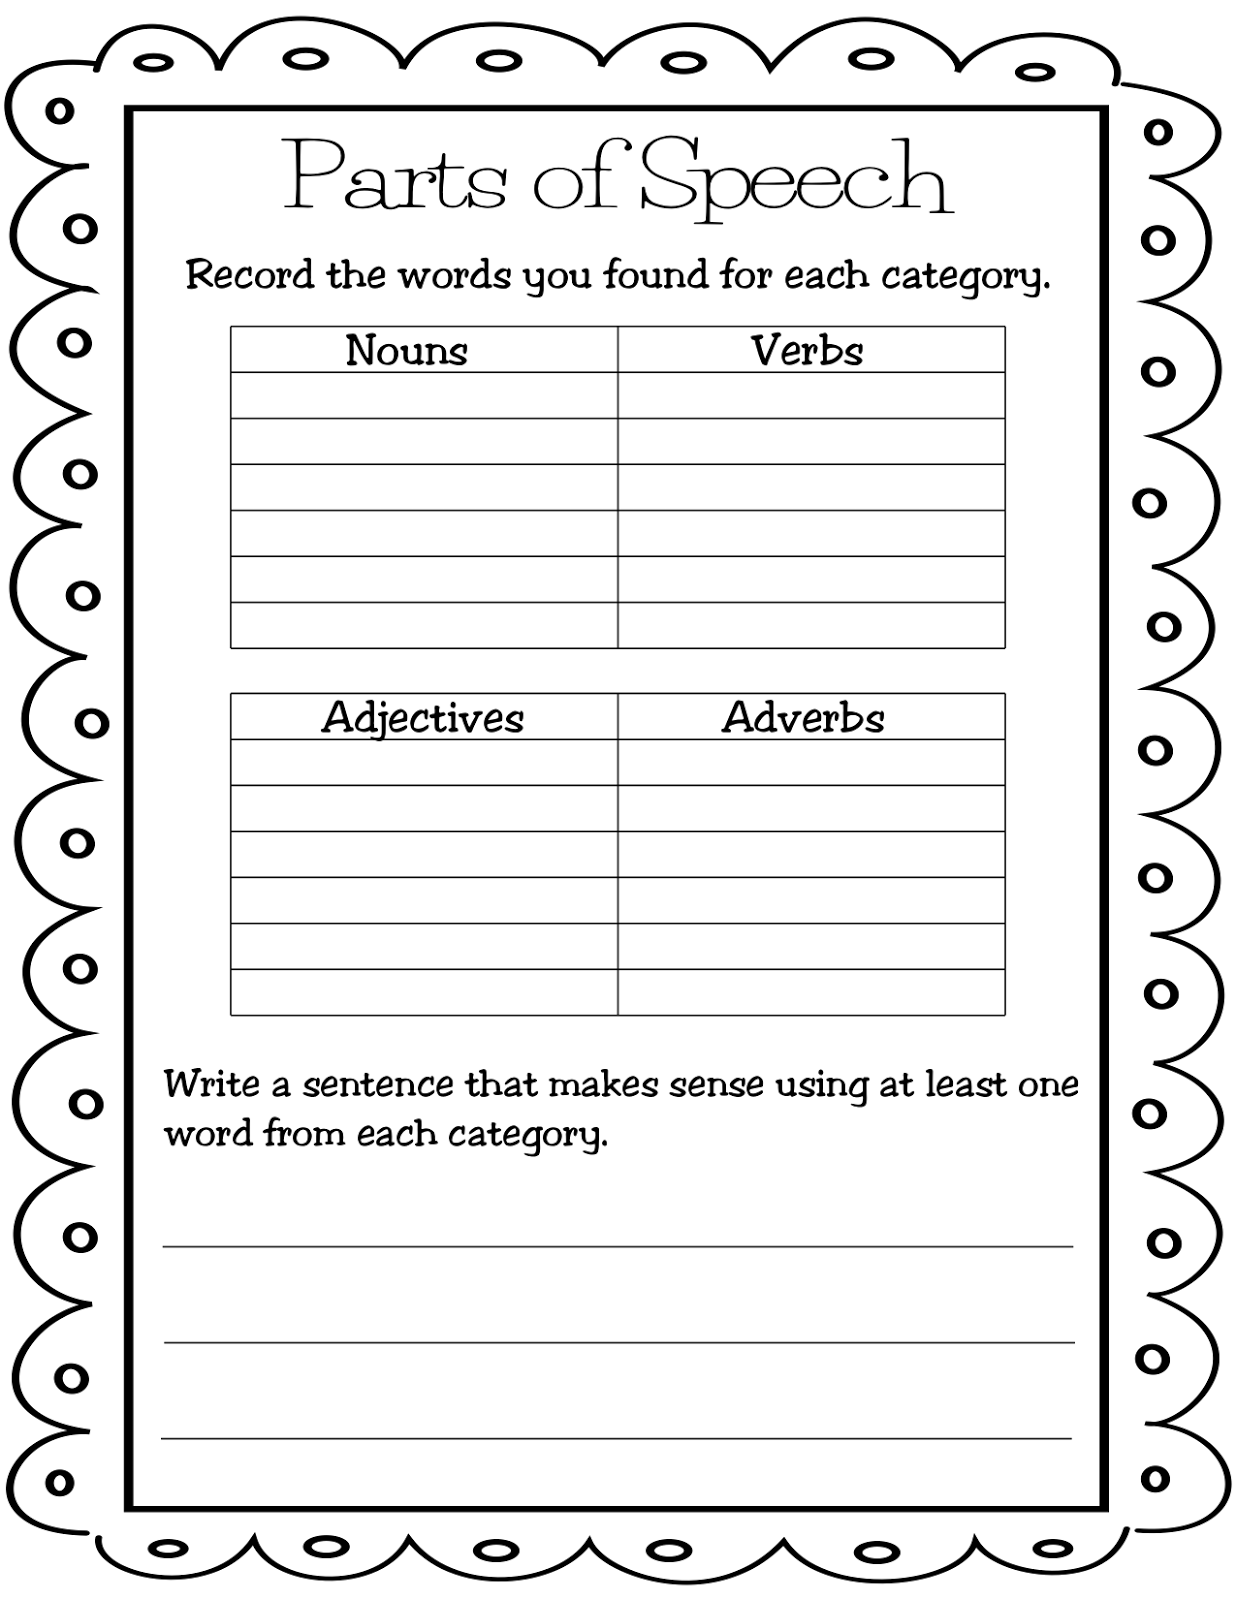 Worksheet Noun Verb Adjective Worksheet Grass Fedjp